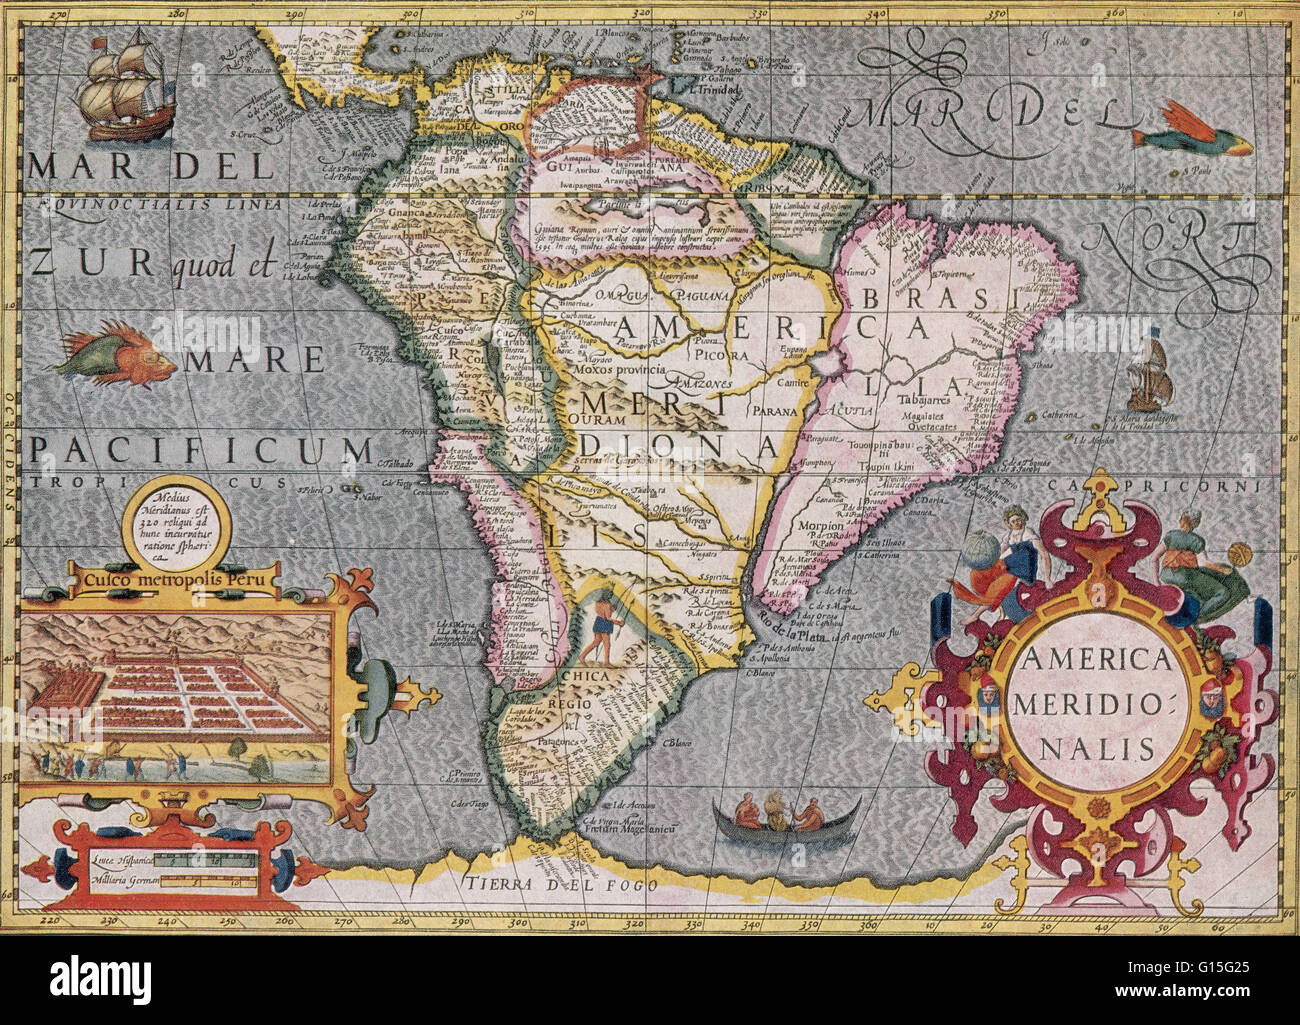 South American map from the Mercator-hondius Atlas, 1606 Stock Photo ...